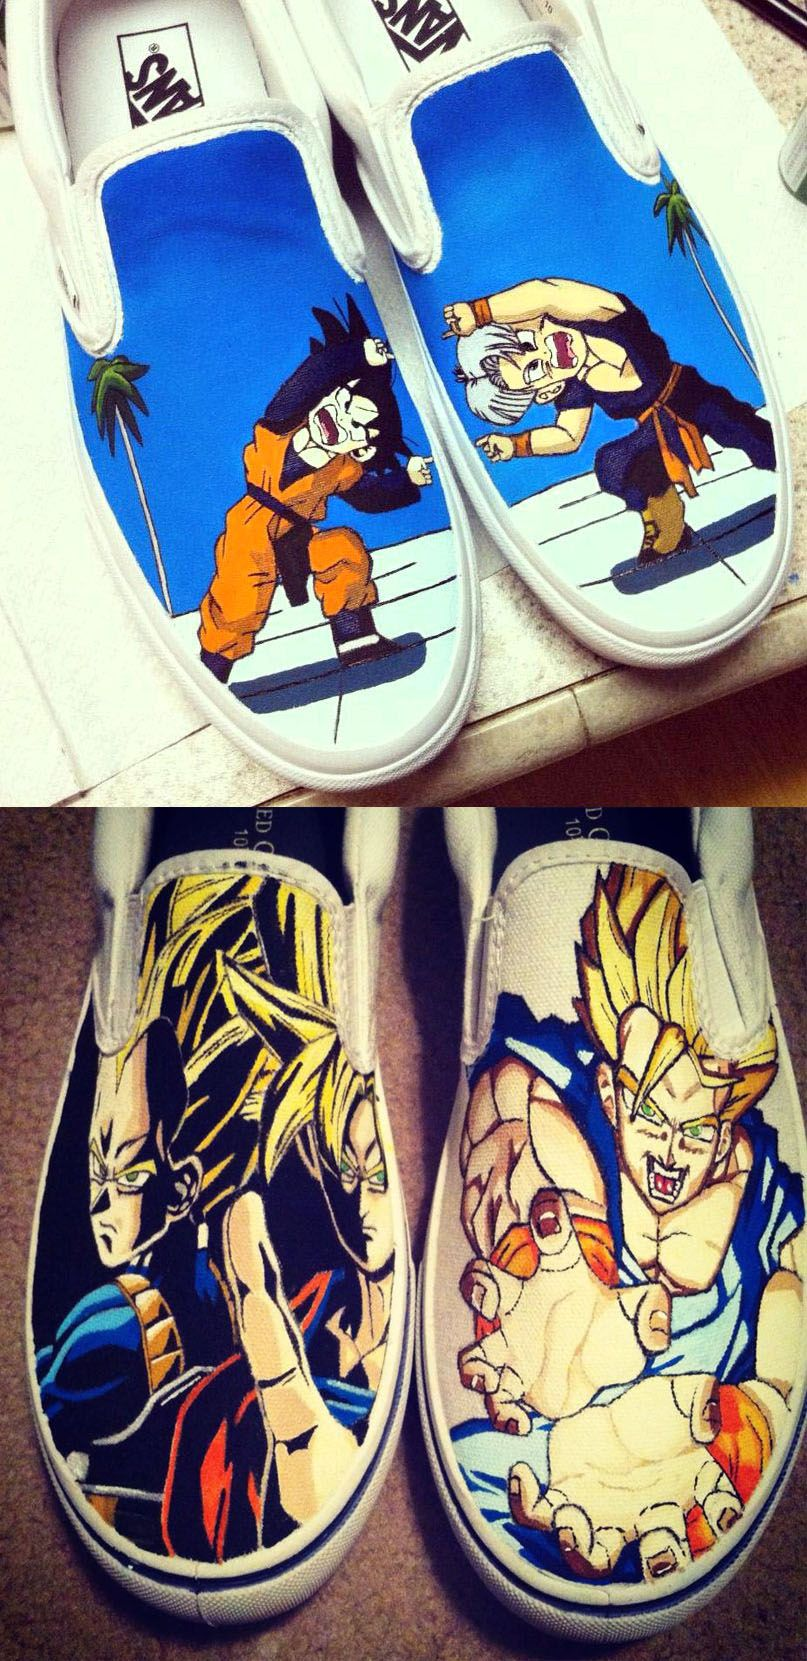 070d1e0158 Custom Dragon Ball Z Shoes | Geeking out | Dragon ball, Dragon ball ...